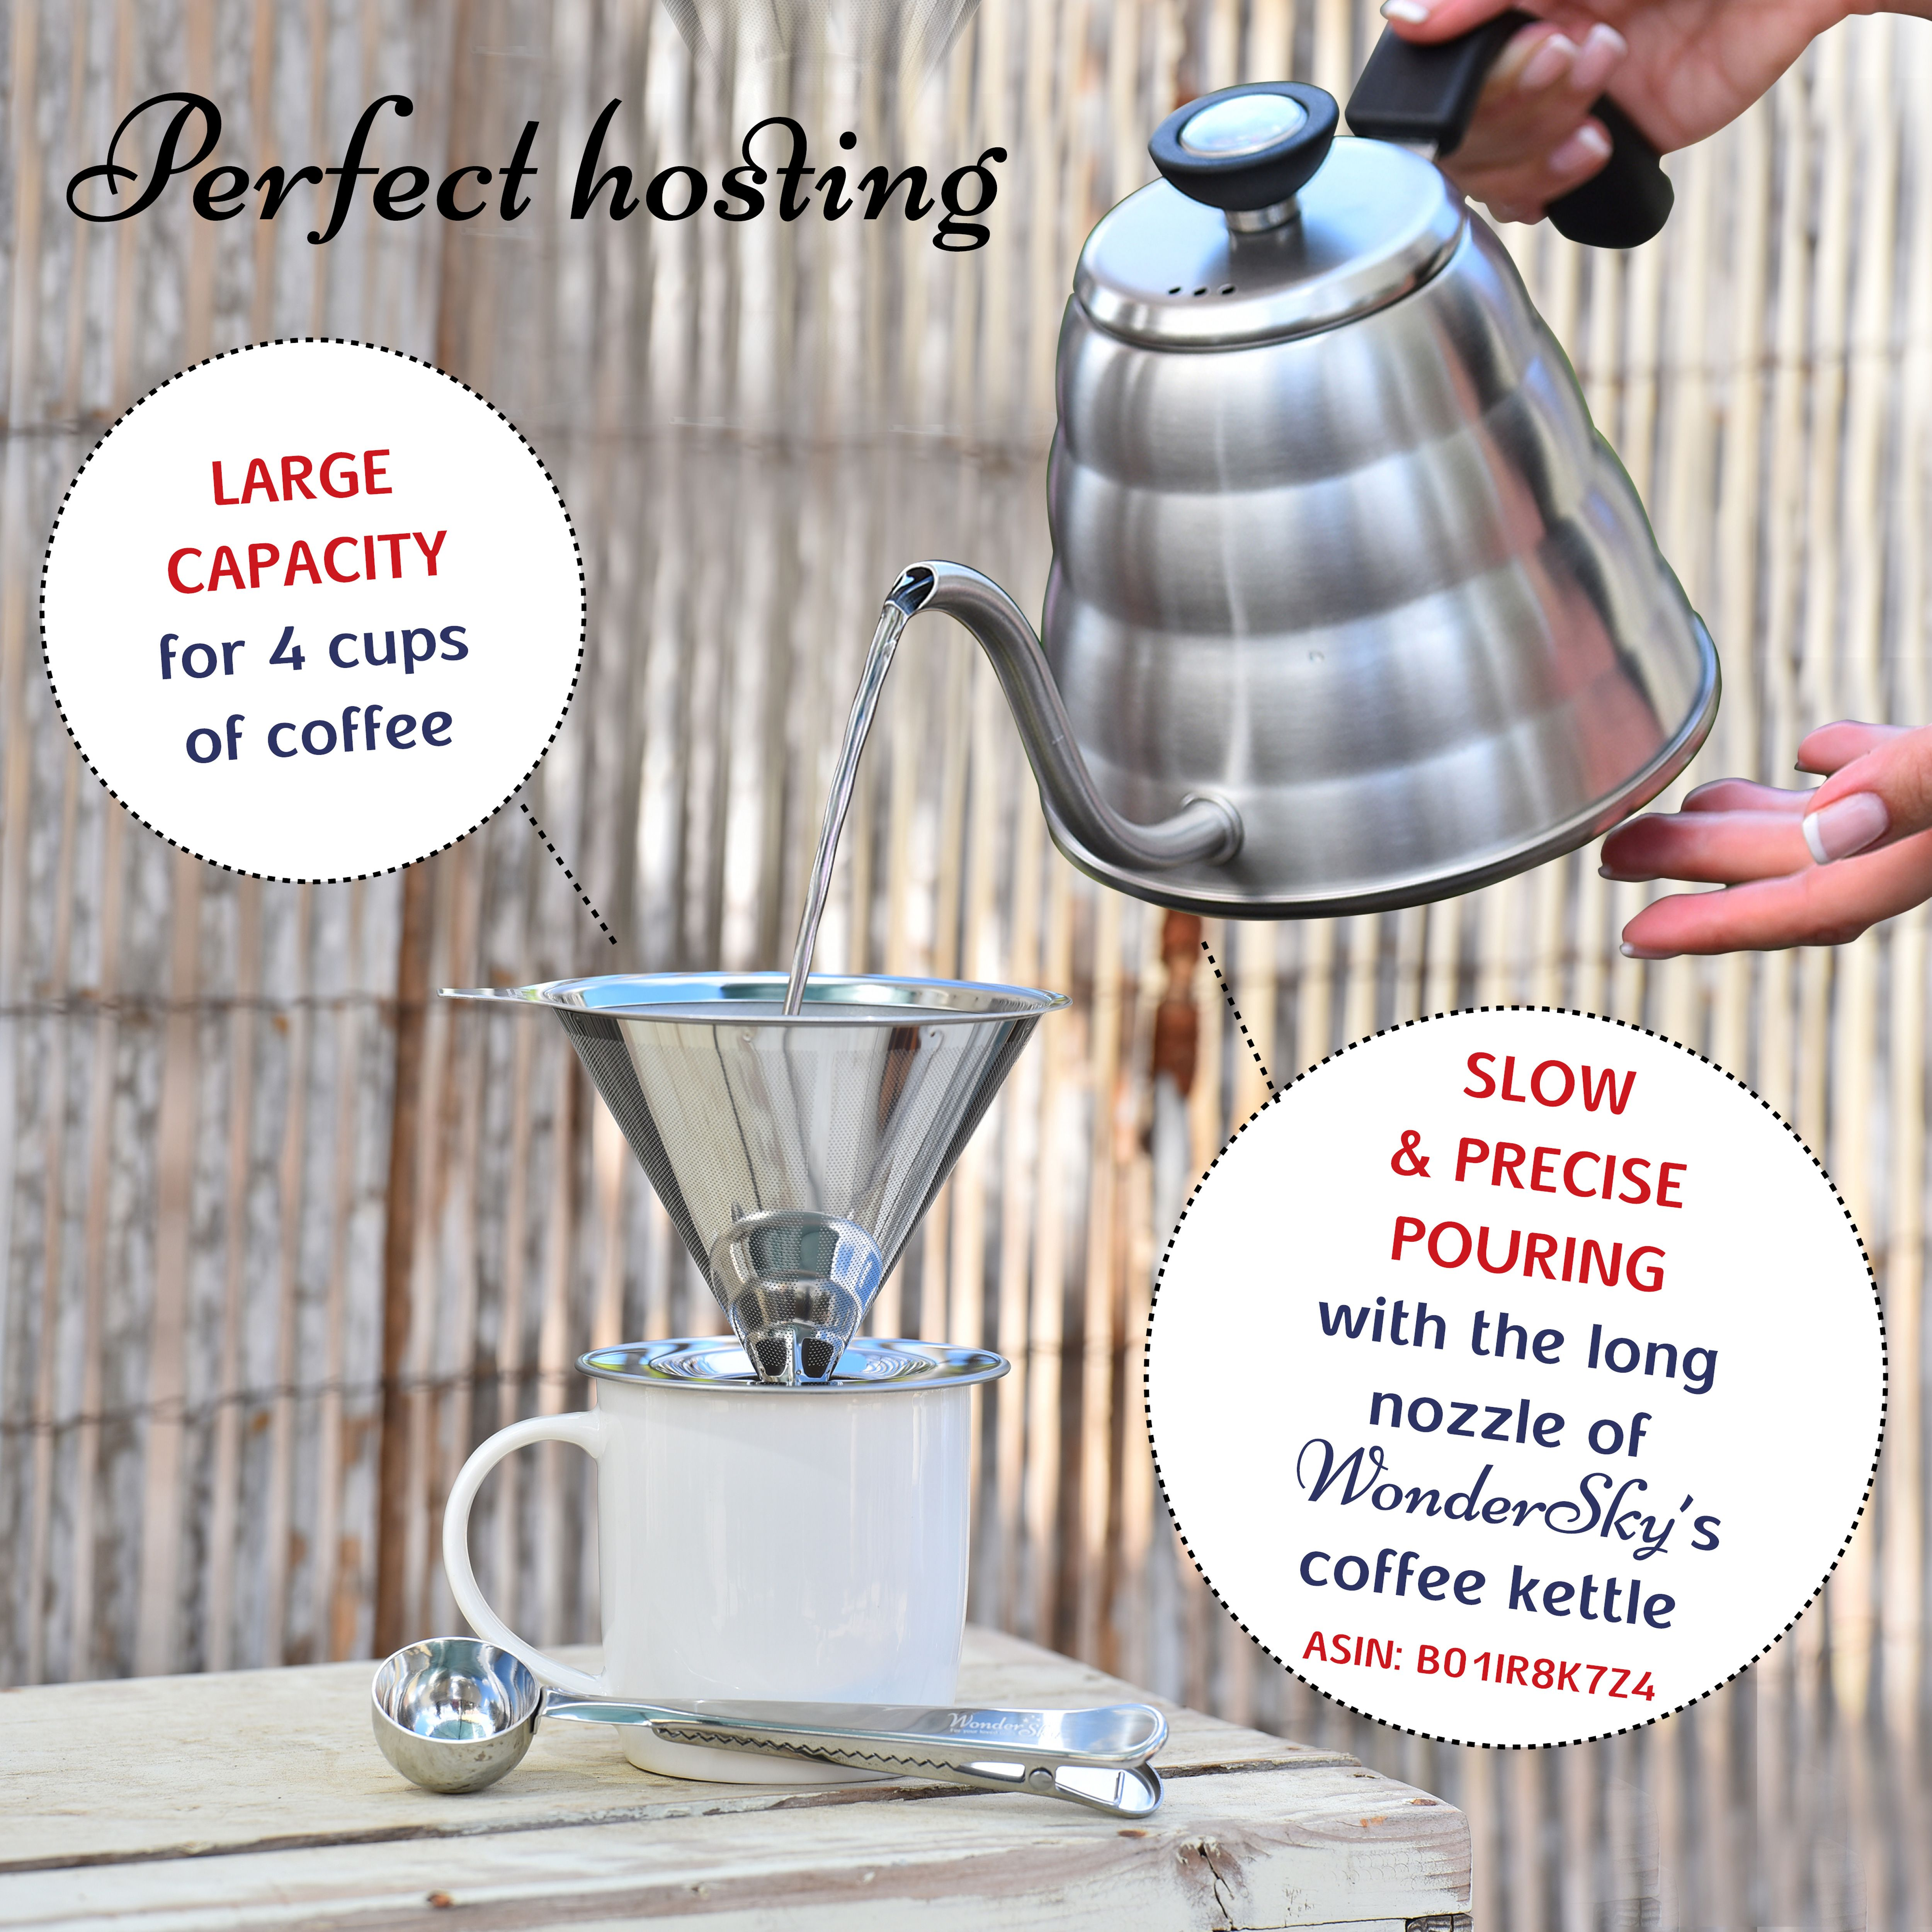 Pin by wondersky on kitchen and dining Coffee in a cone